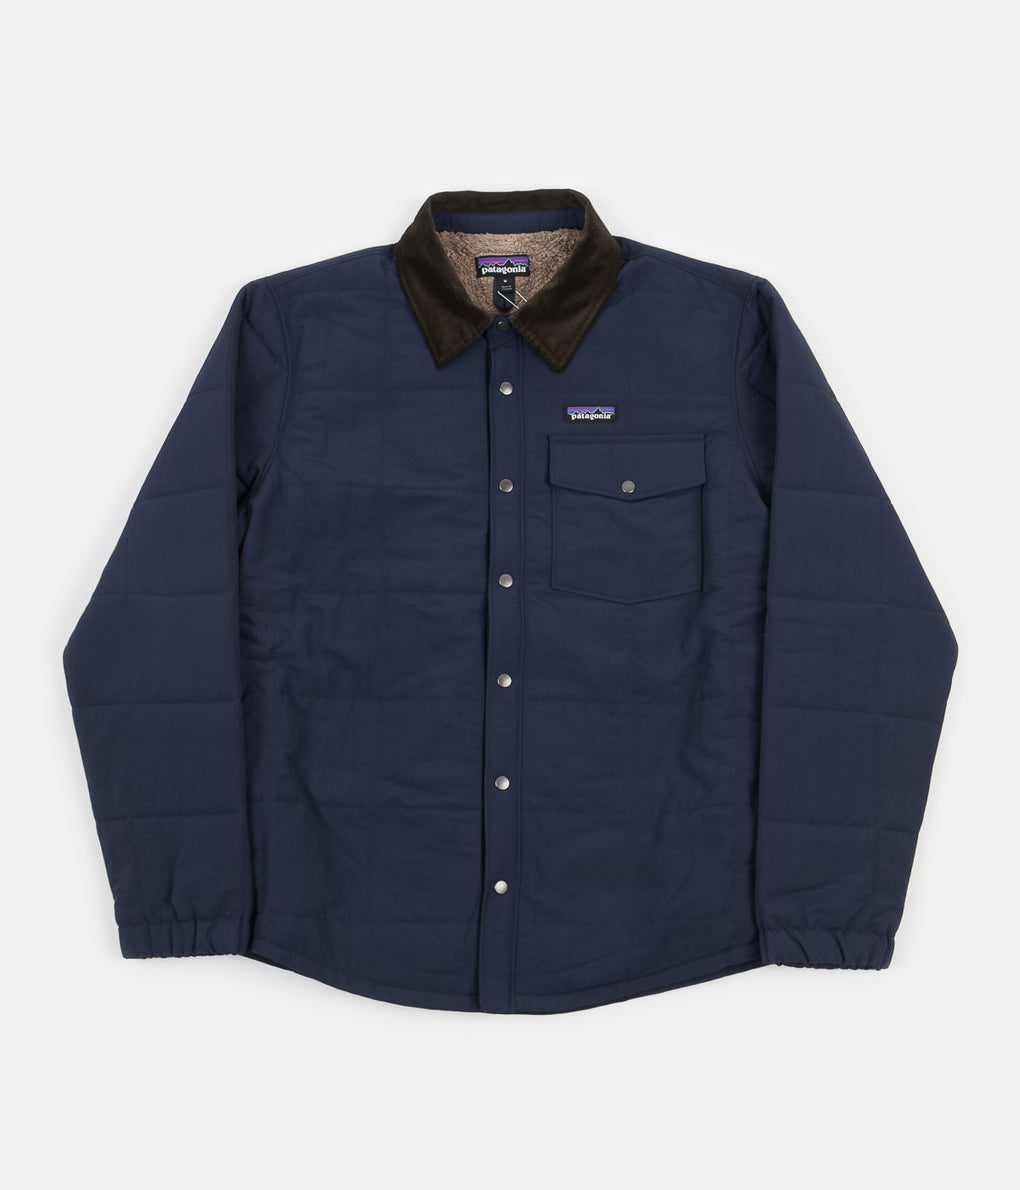 Patagonia Isthmus Quilted Shirt Jacket - New Navy